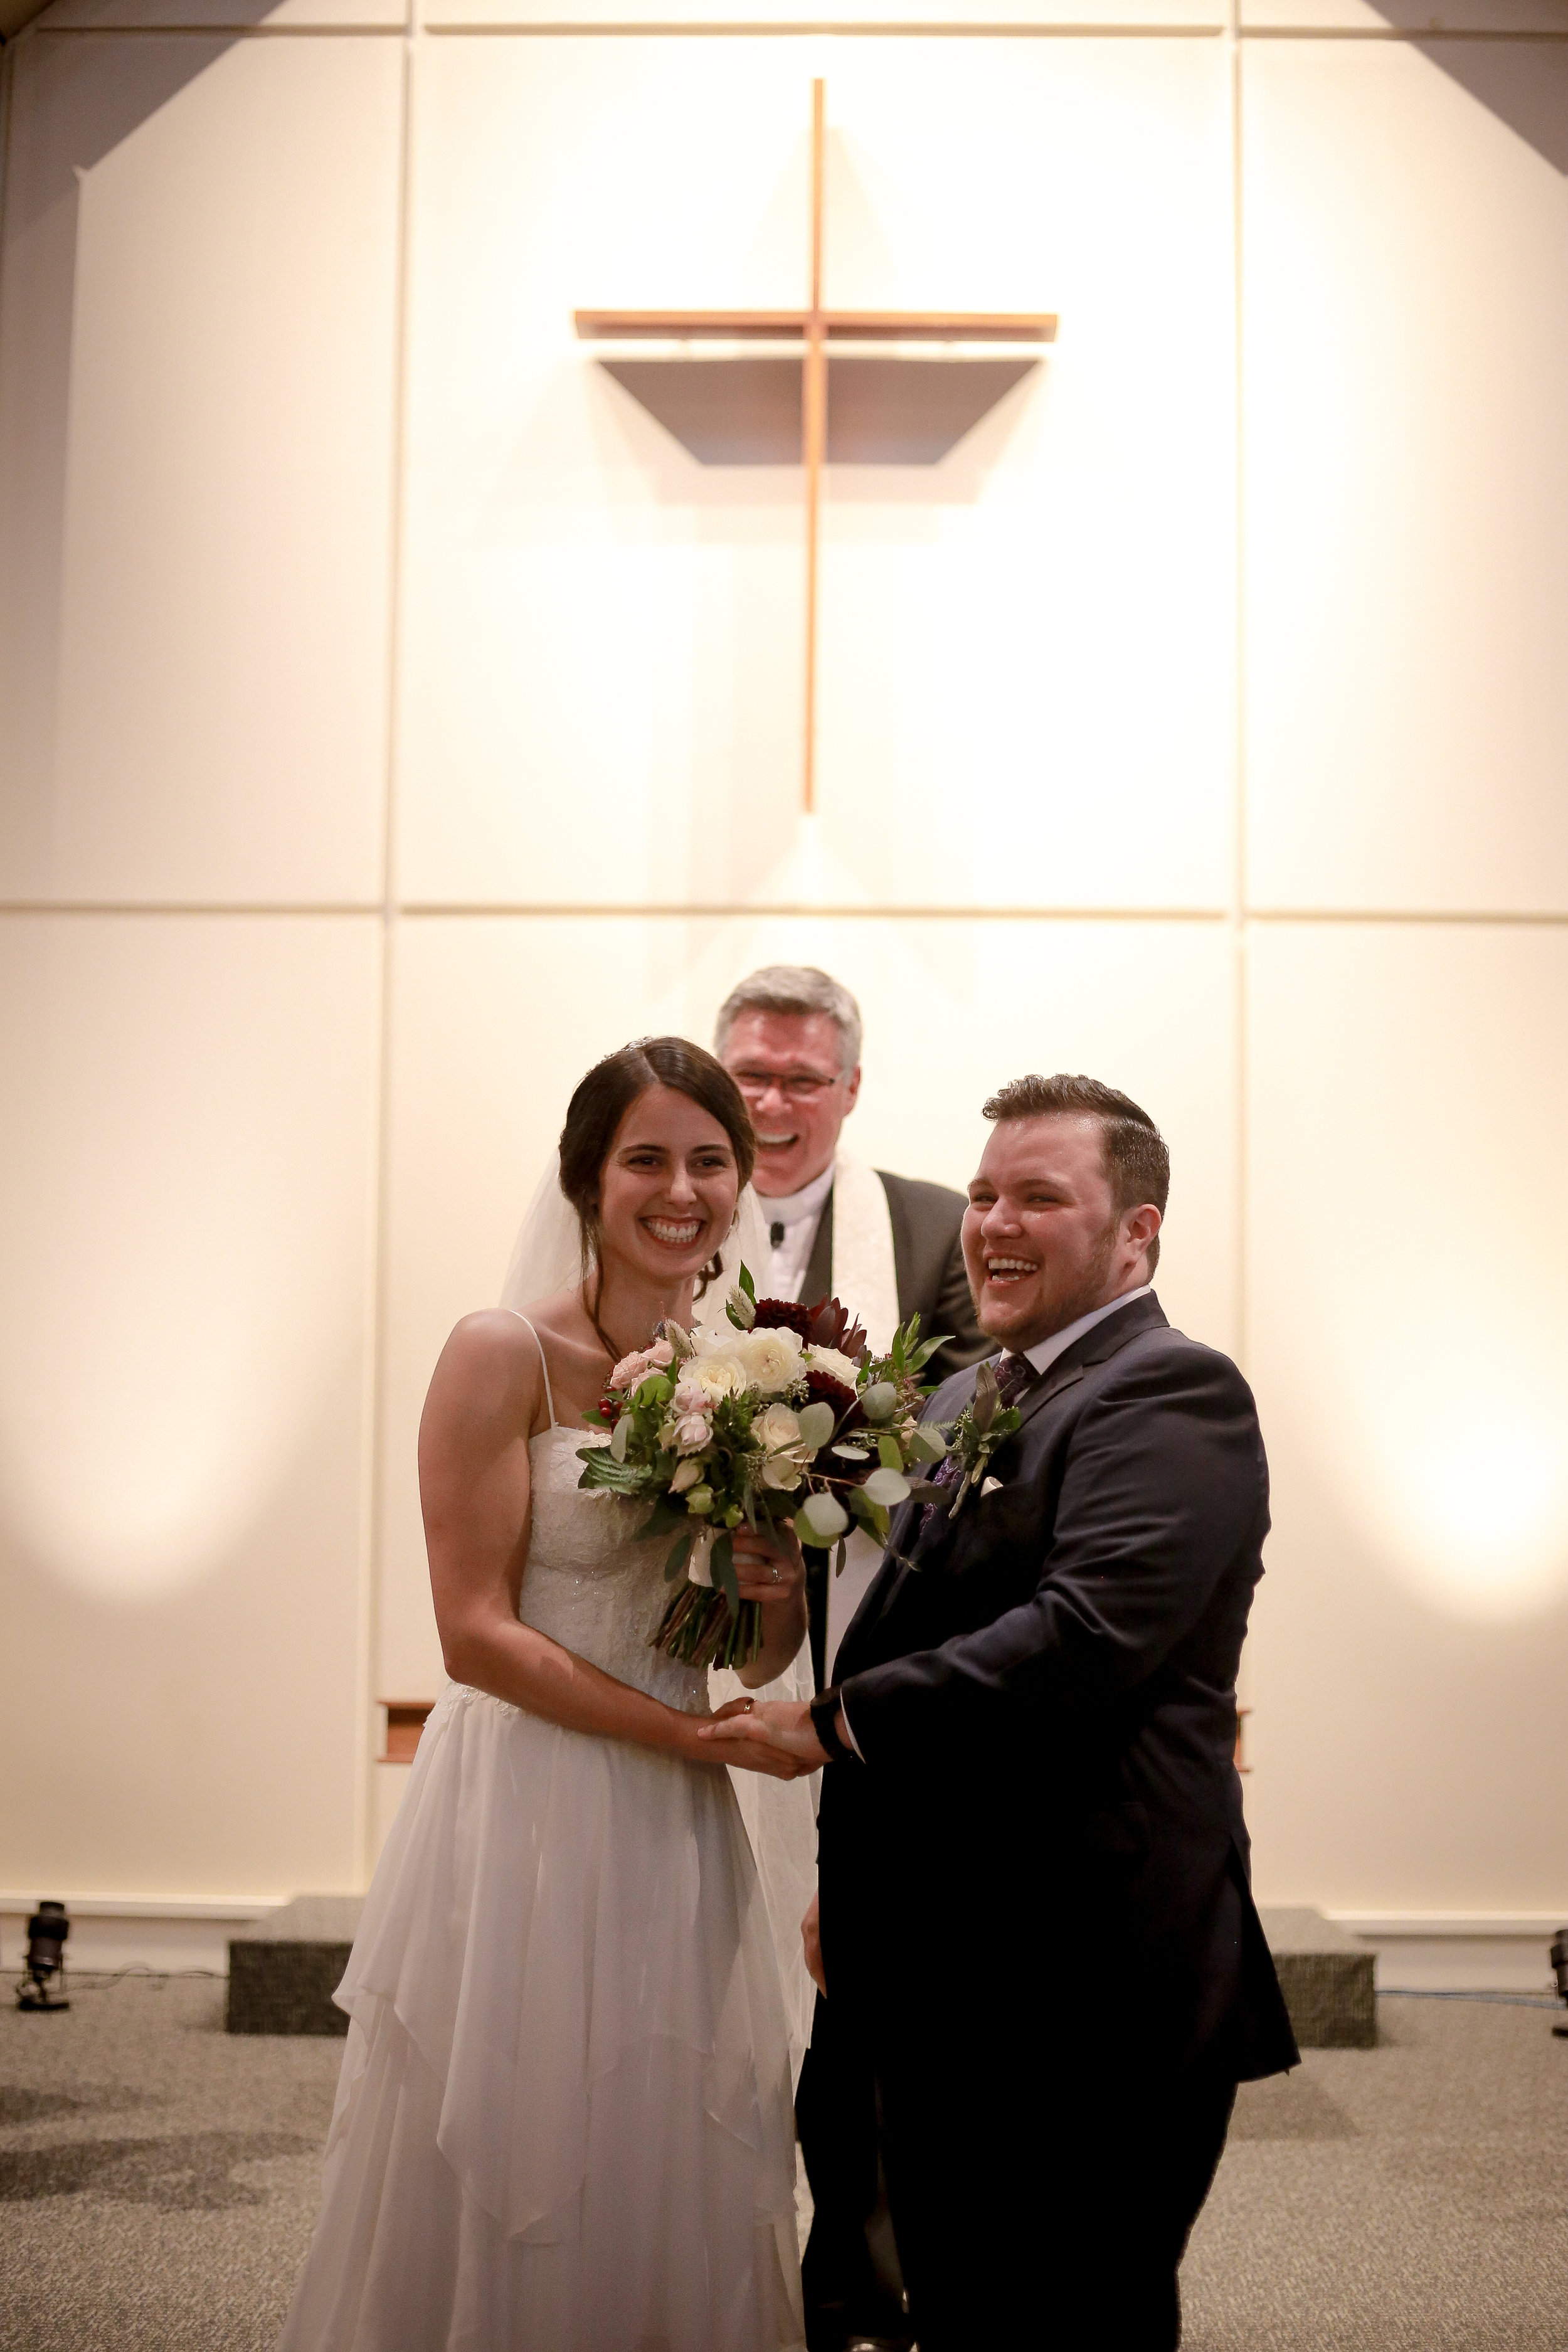 Emily&AaronWedding (284 of 572).jpg